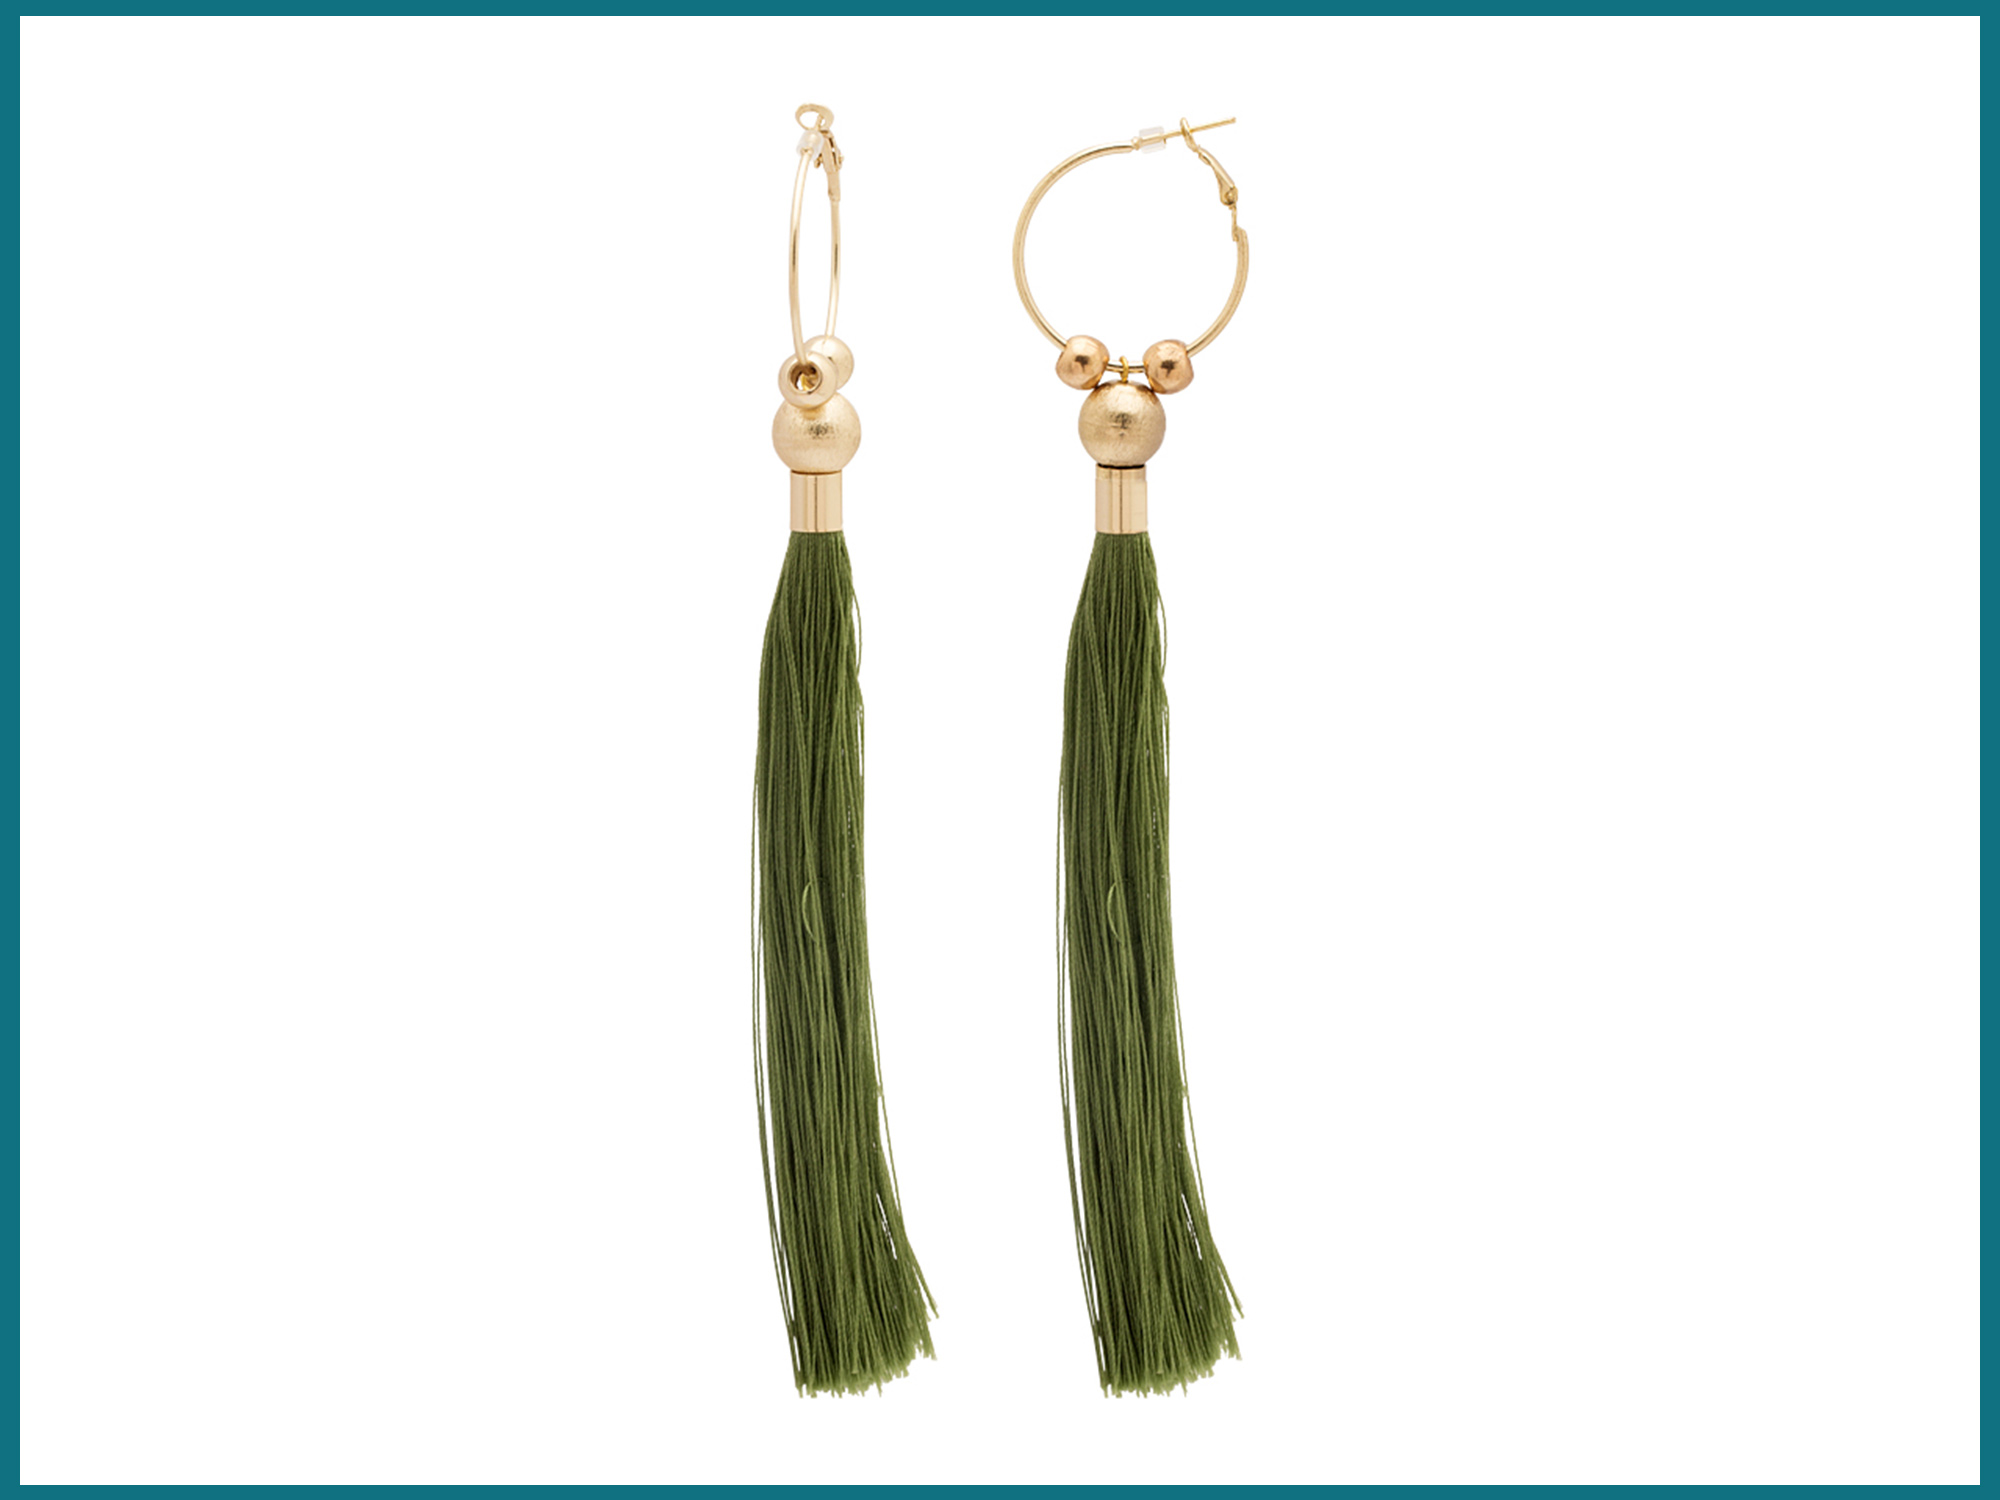 Golden Hoop Dangled With Green Threaded Tassel For Women